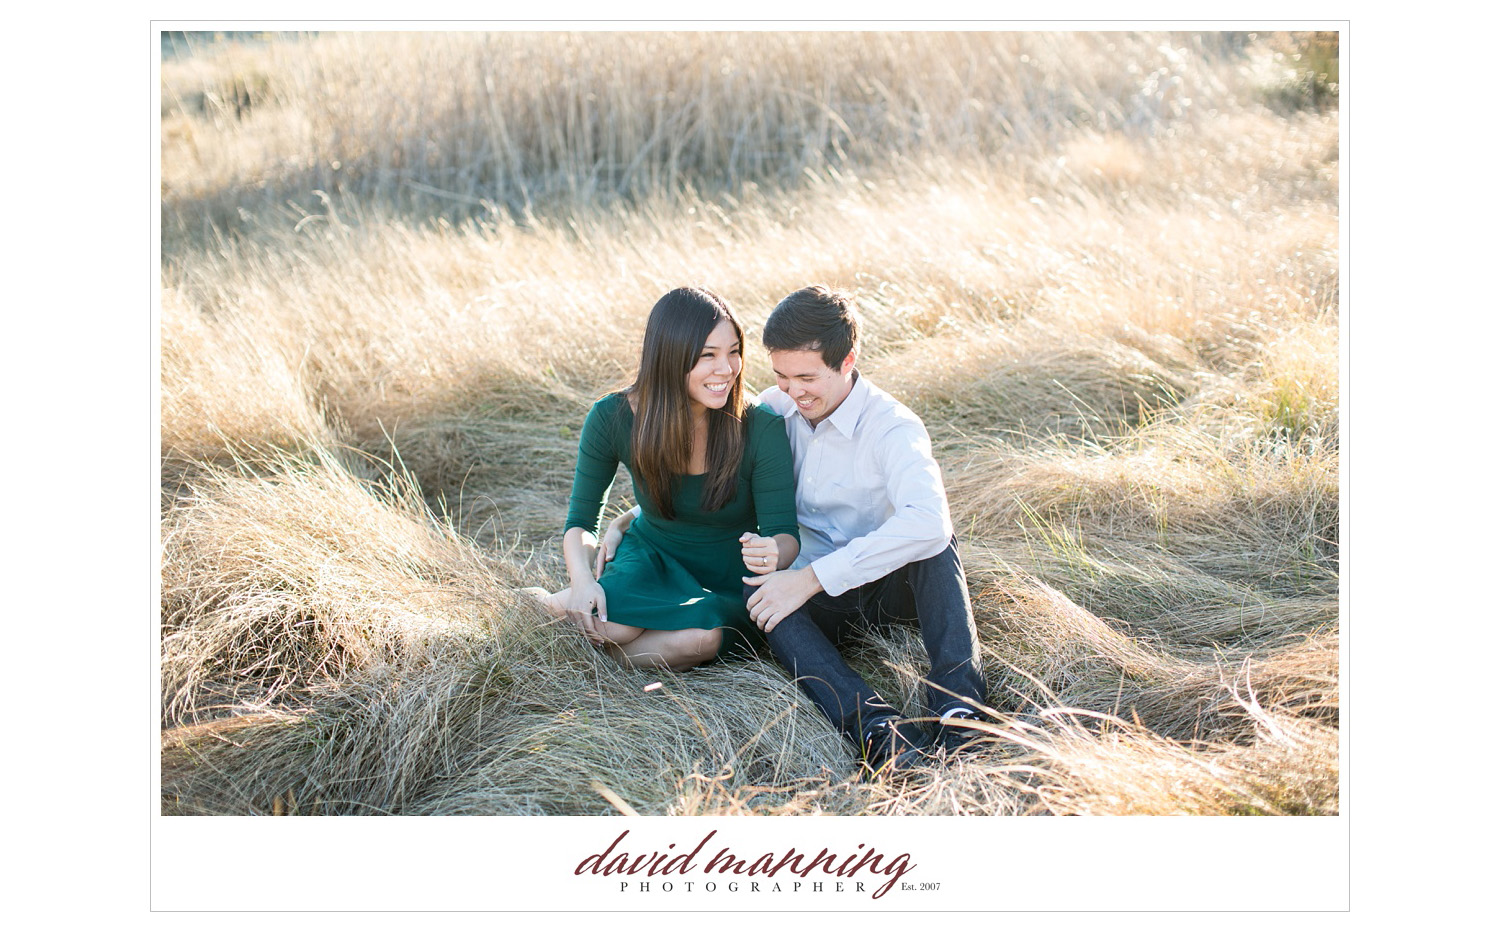 Del-Mar-Ramona-Julian-Engagement-Photos-David-Manning-Photographers-0007.jpg